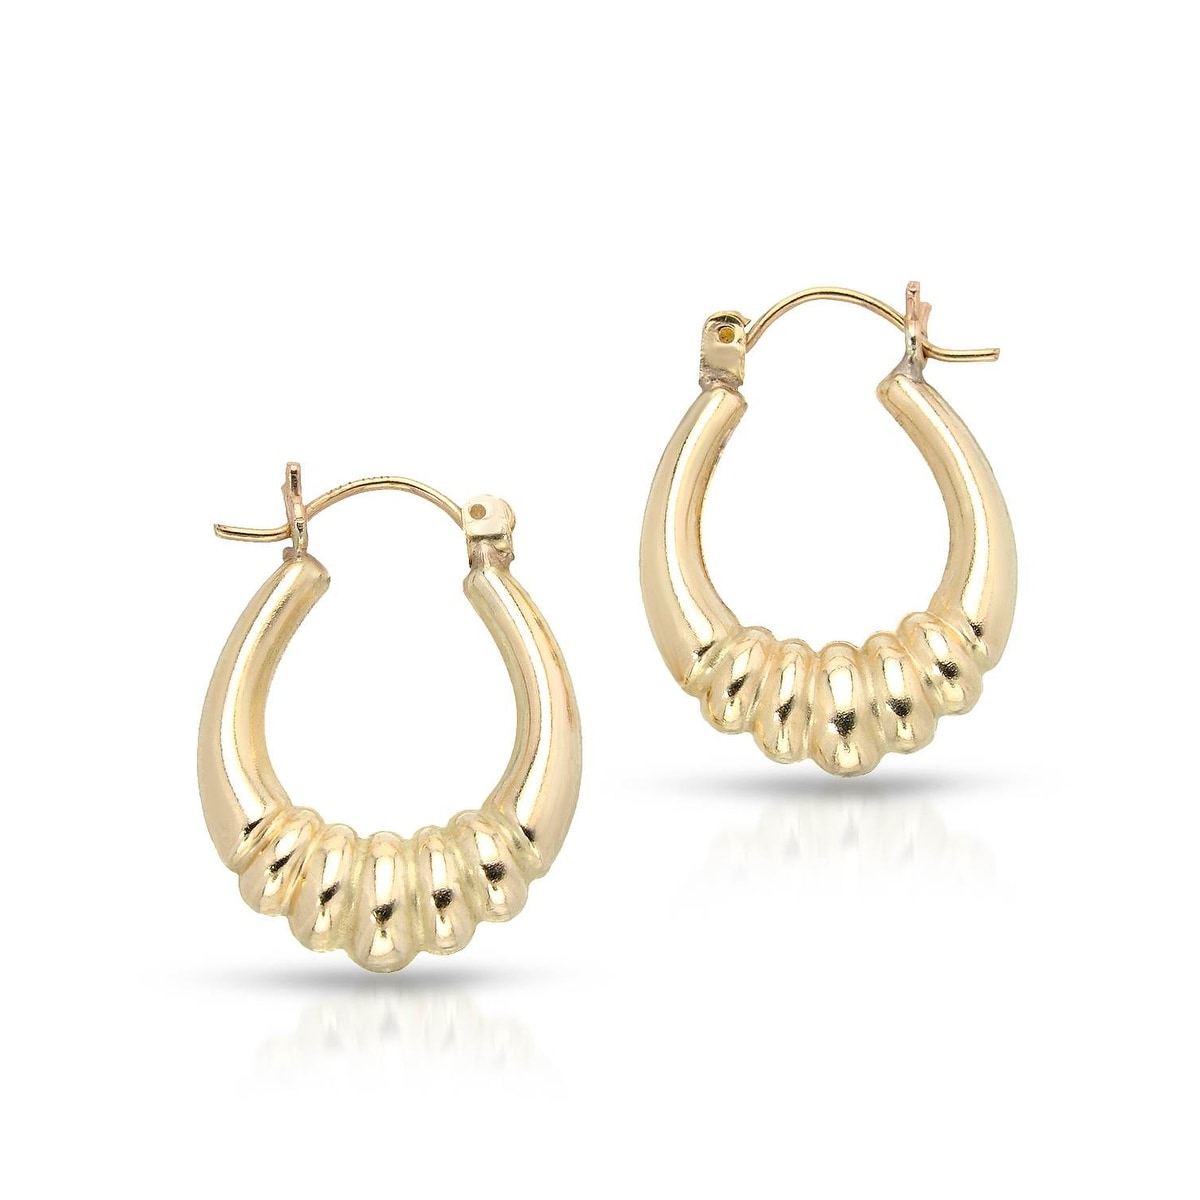 Mcs Jewelry Inc 10 KARAT YELLOW GOLD HOOP EARRINGS WITH DESIGN (22MM DIAMETER) - Thumbnail 0